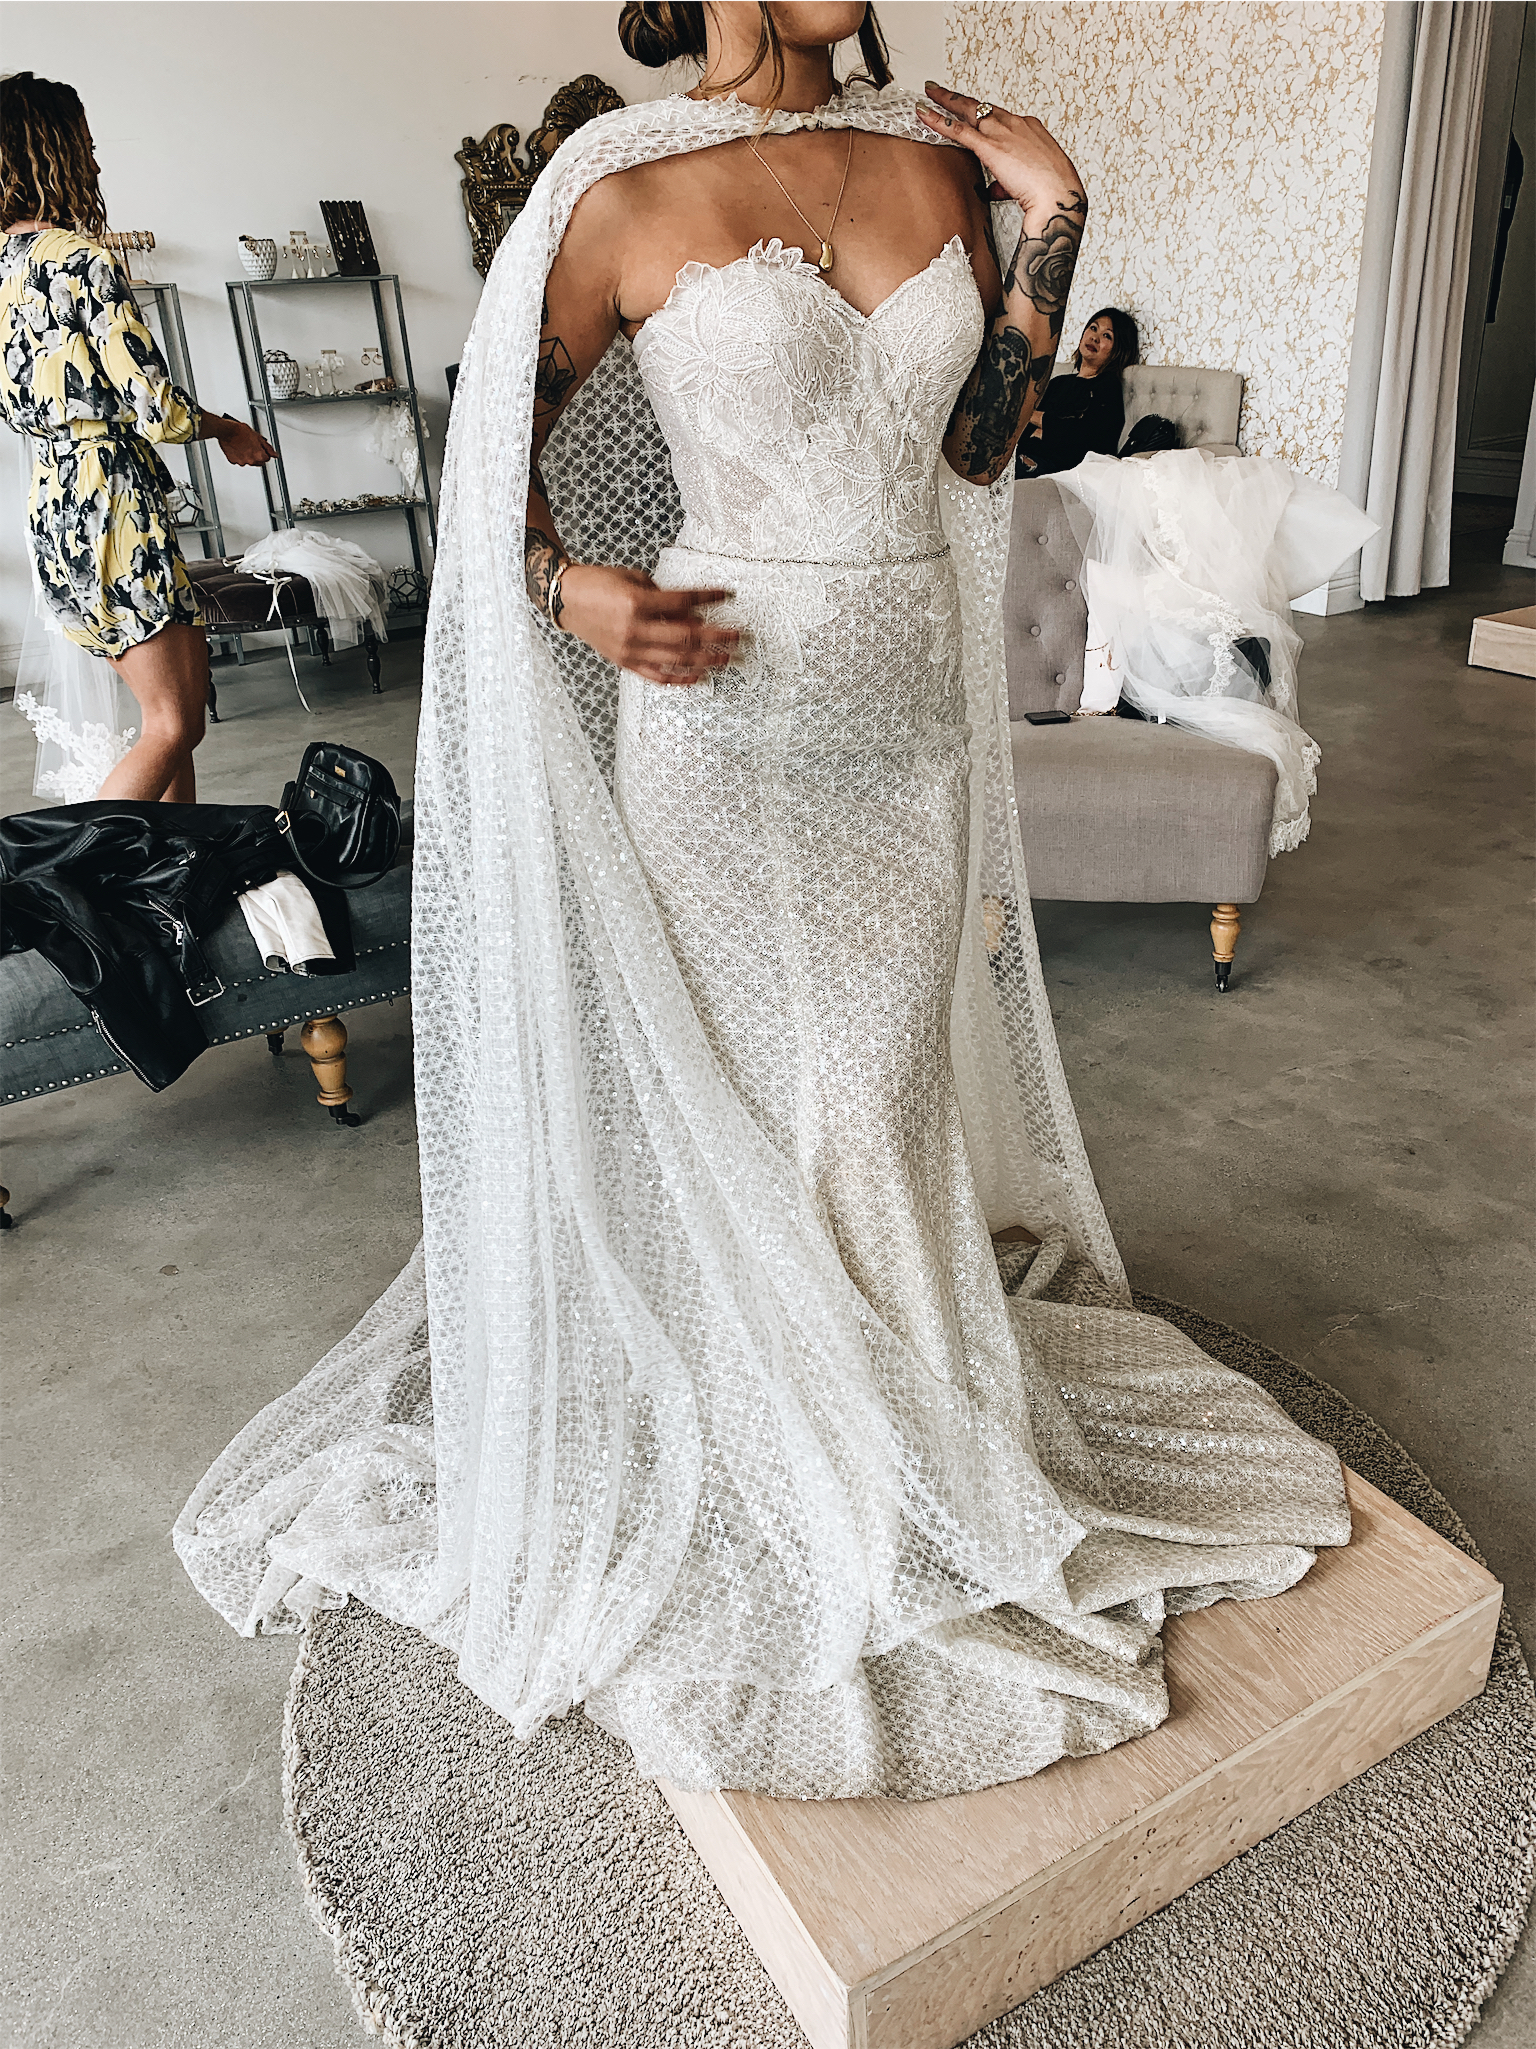 The Khaleesi dress - Now, this one is perfect if you love Game of Thrones. I felt so dramatic and powerful in this one. The cape, the sequins, the drama! The material was a bit scratchy though and felt like this fitted more with a winter wedding or something dramatic like a castle.